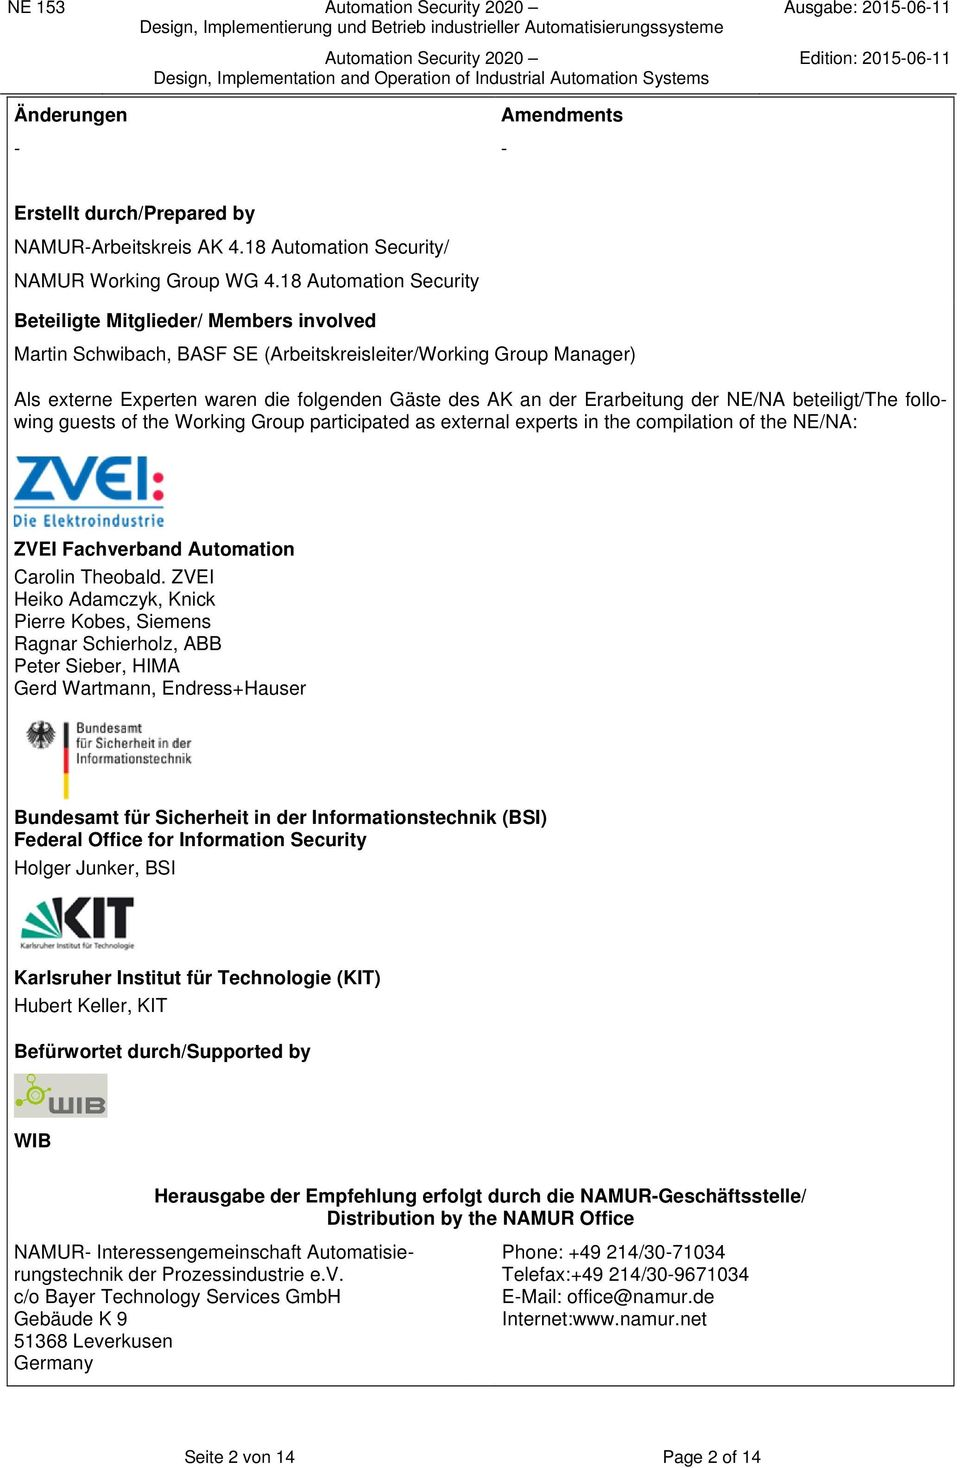 Erarbeitung der NE/NA beteiligt/the following guests of the Working Group participated as external experts in the compilation of the NE/NA: ZVEI Fachverband Automation Carolin Theobald.